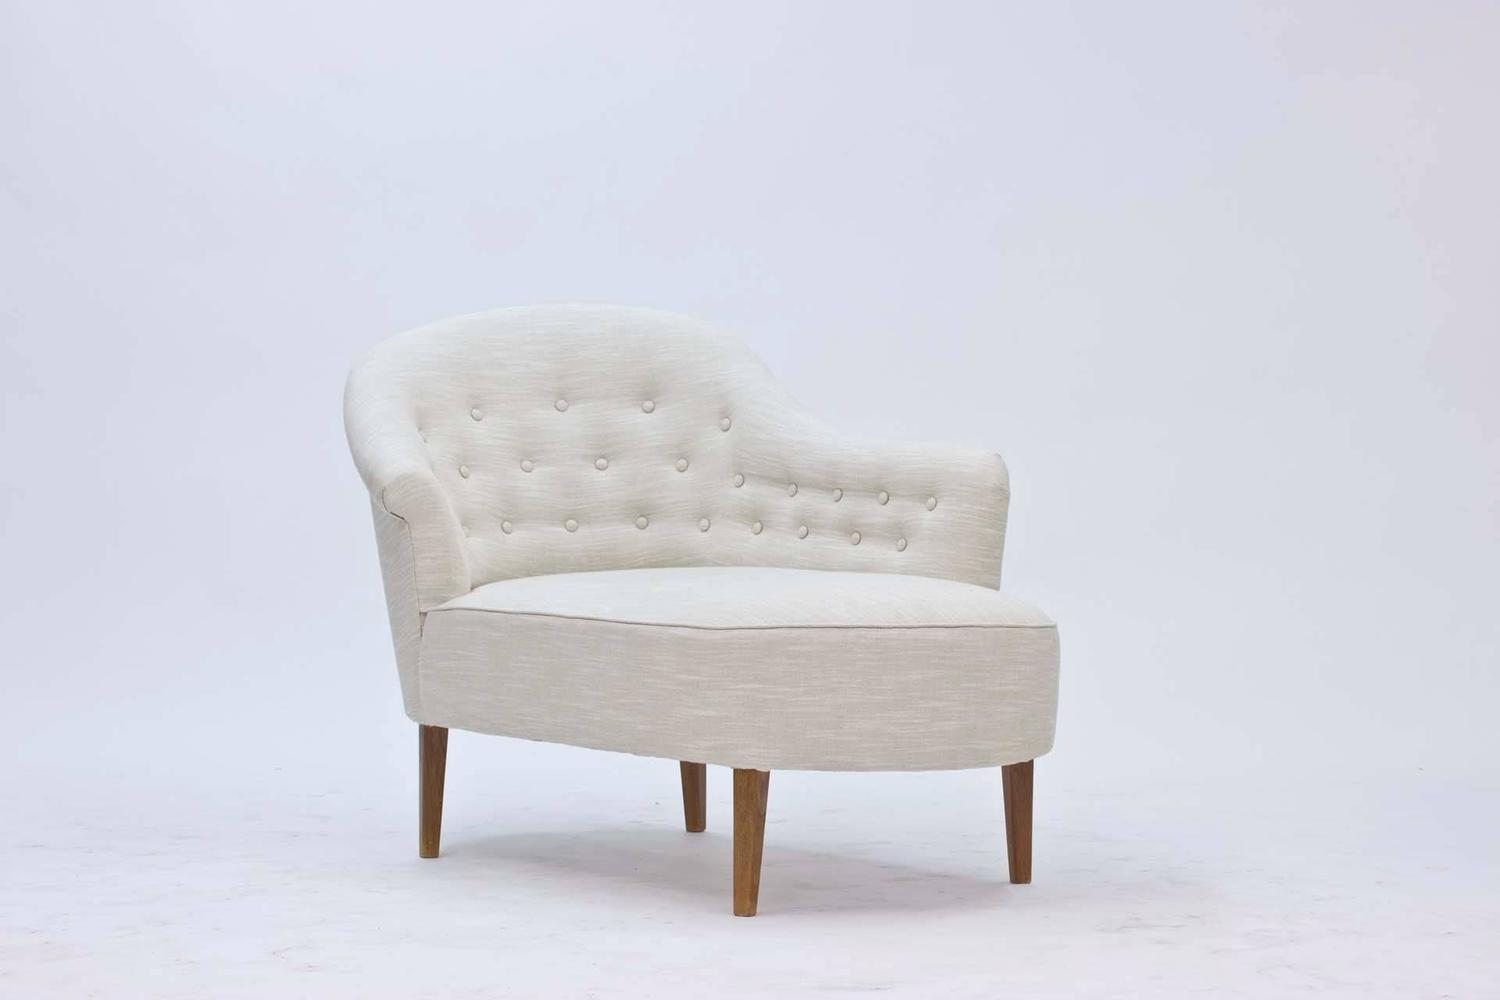 Swedish 1950s chaise longue at 1stdibs for 1950 chaise lounge